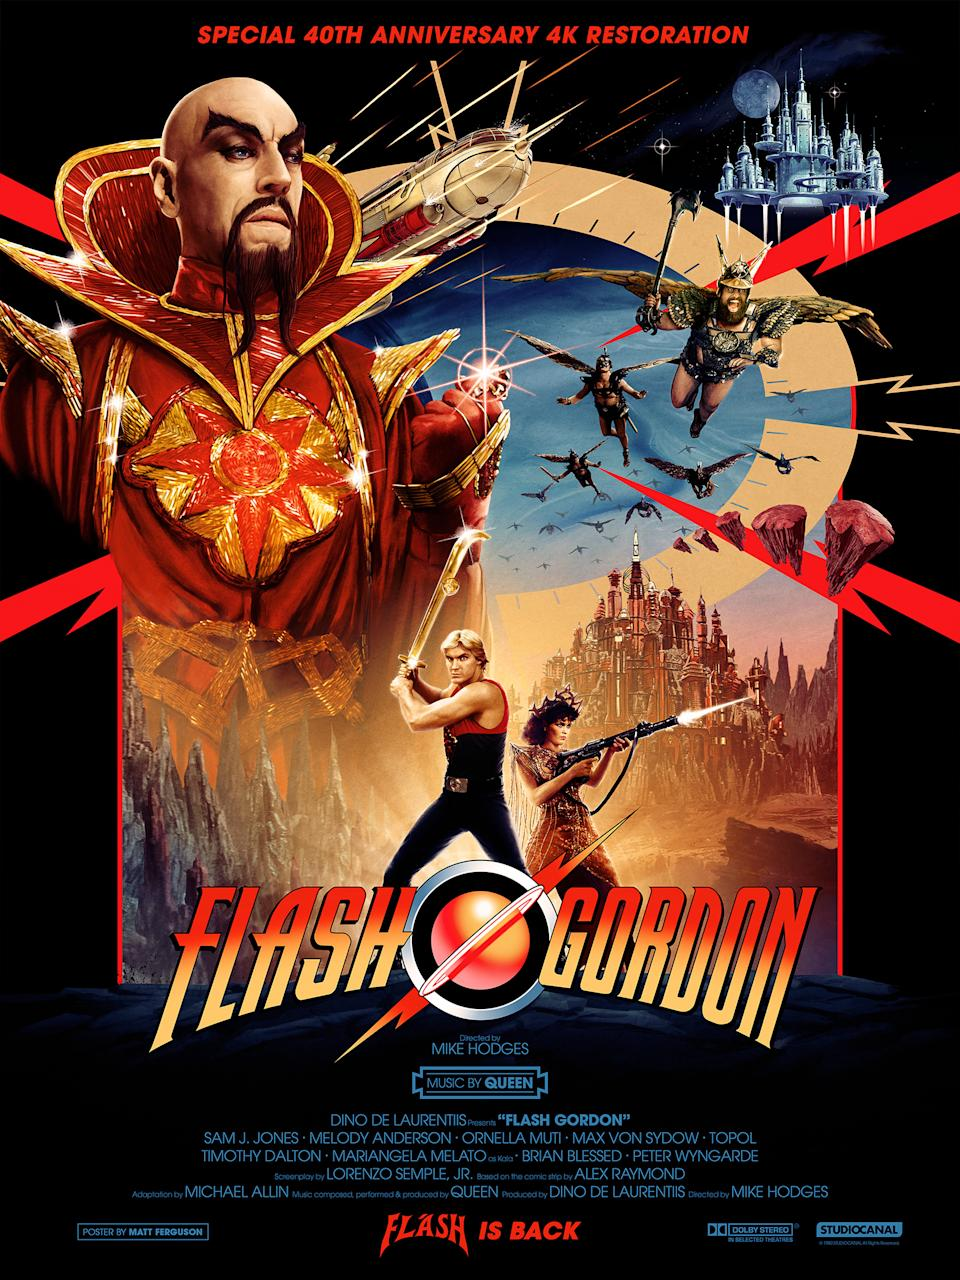 The new Flash Gordon art work, designed by Matt Ferguson. (Studiocanal)